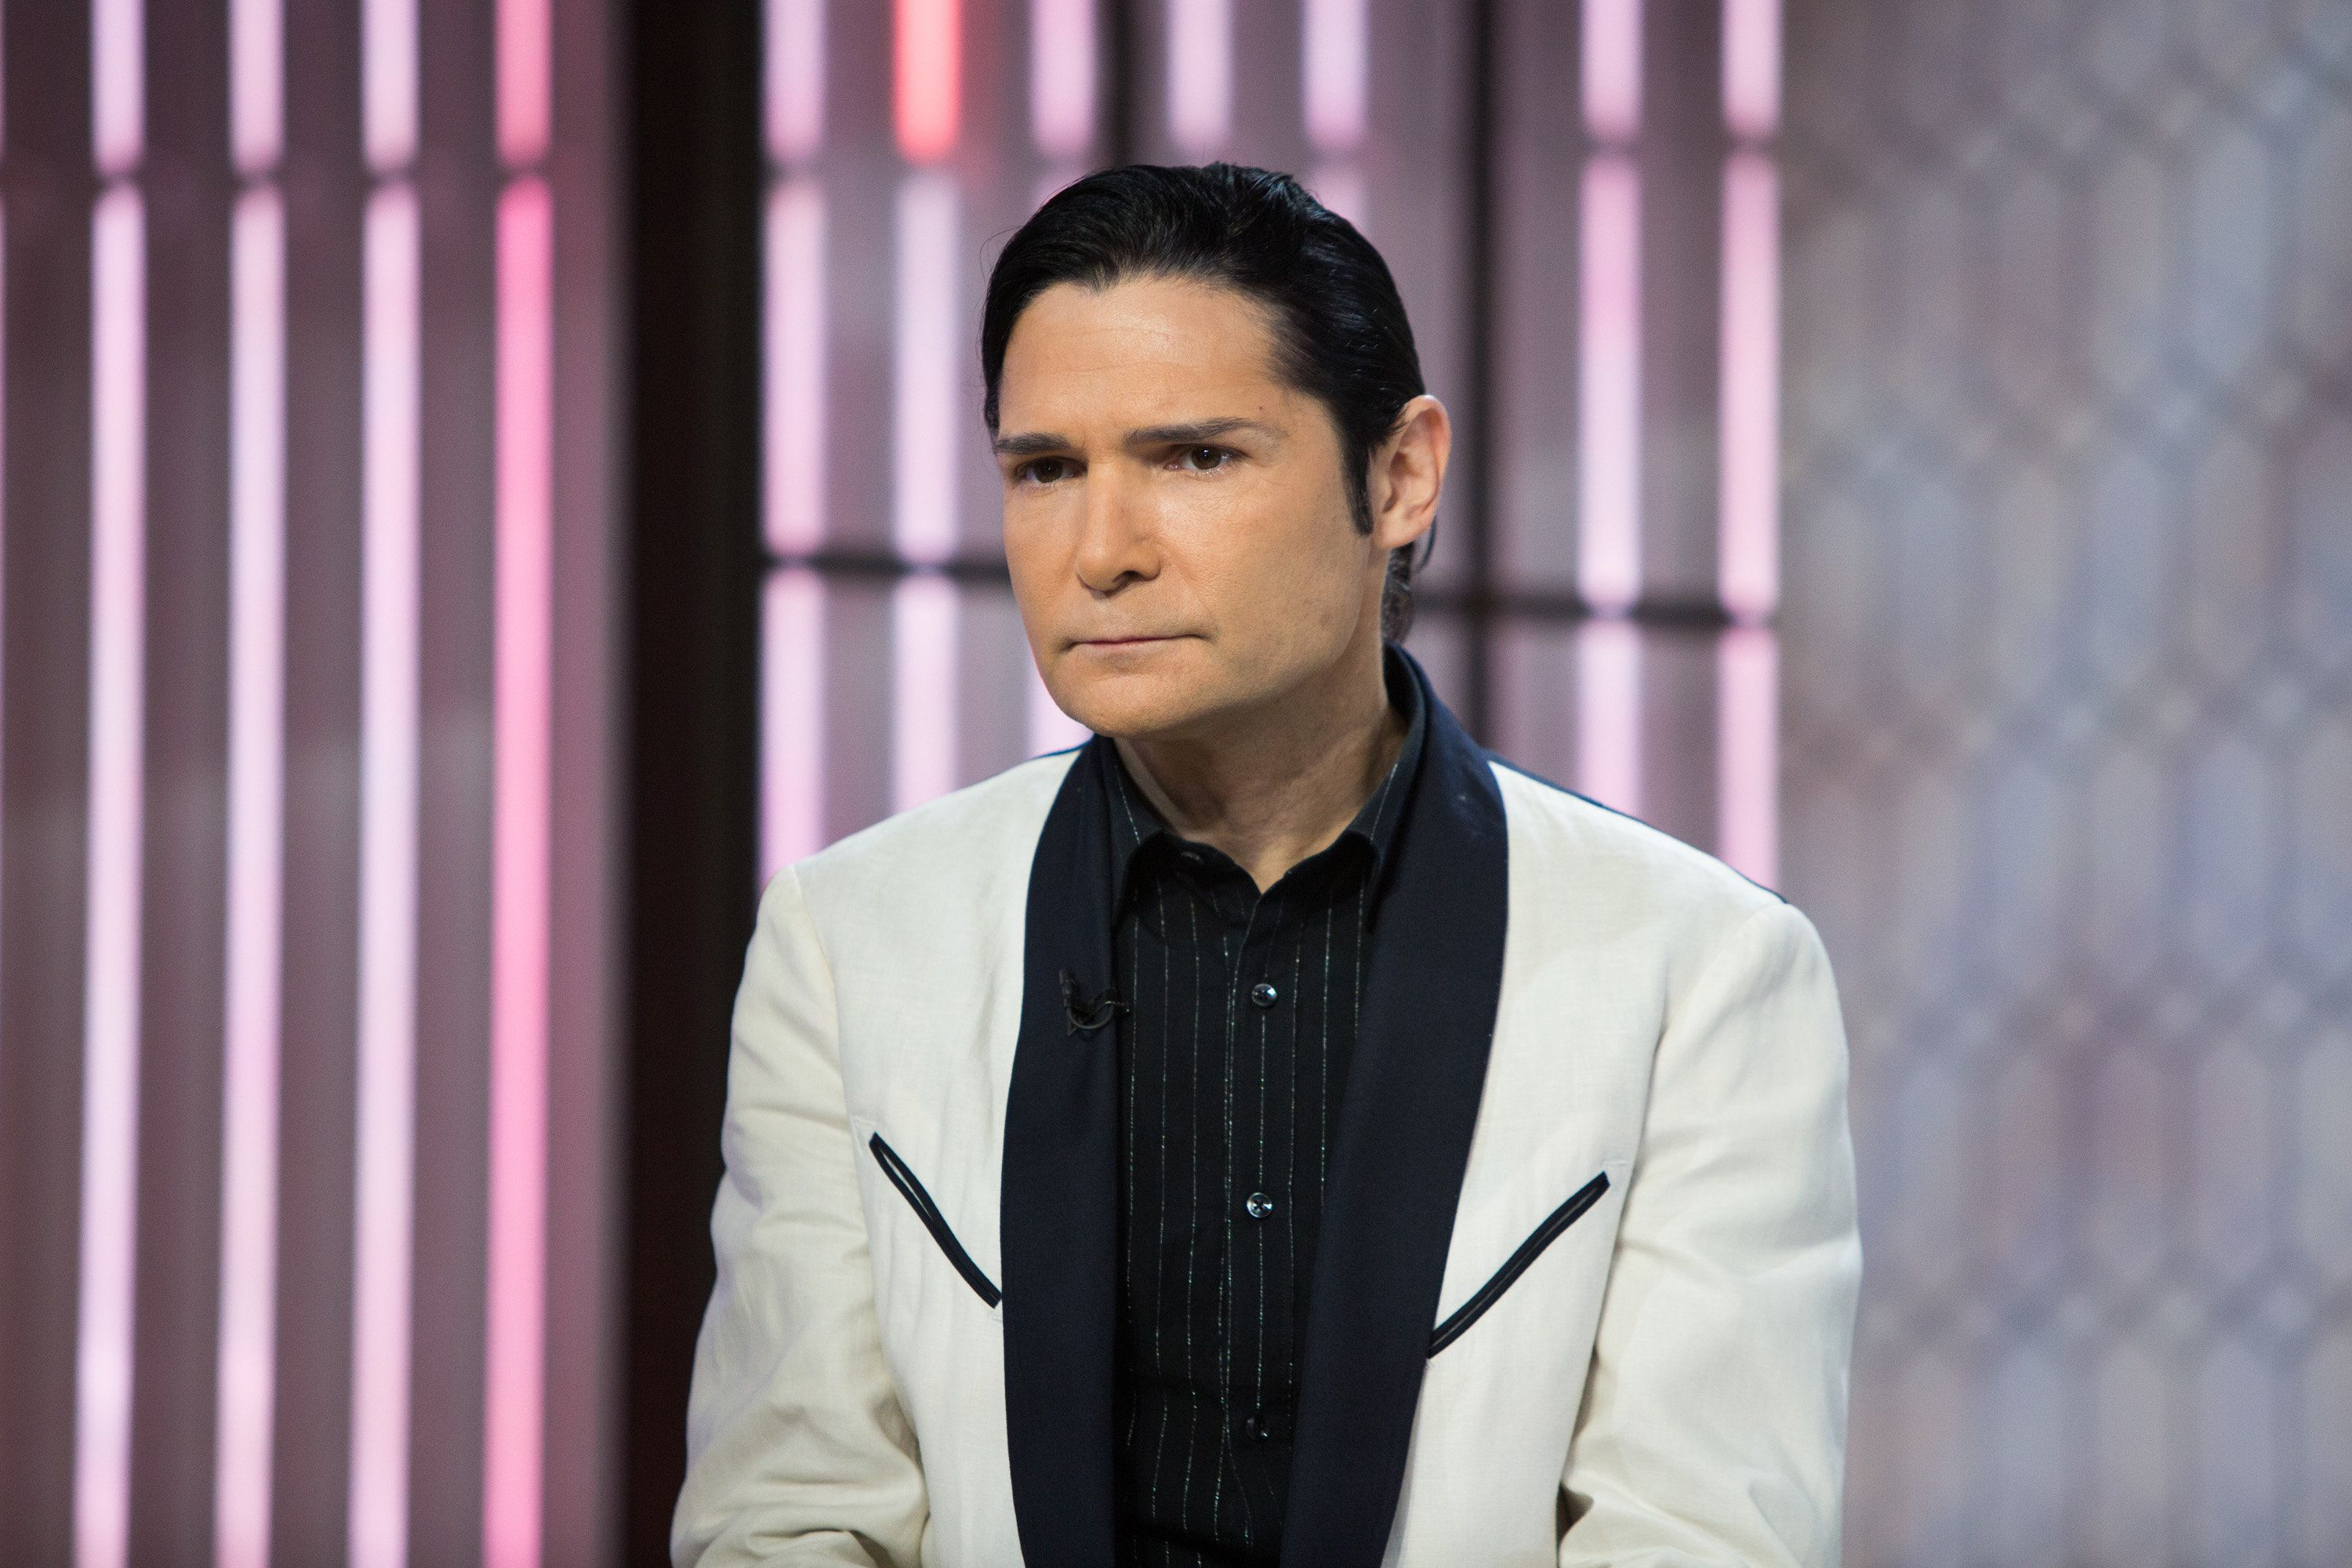 Corey Feldman's Michael Jackson Predator List Does Exist, Police Now Say